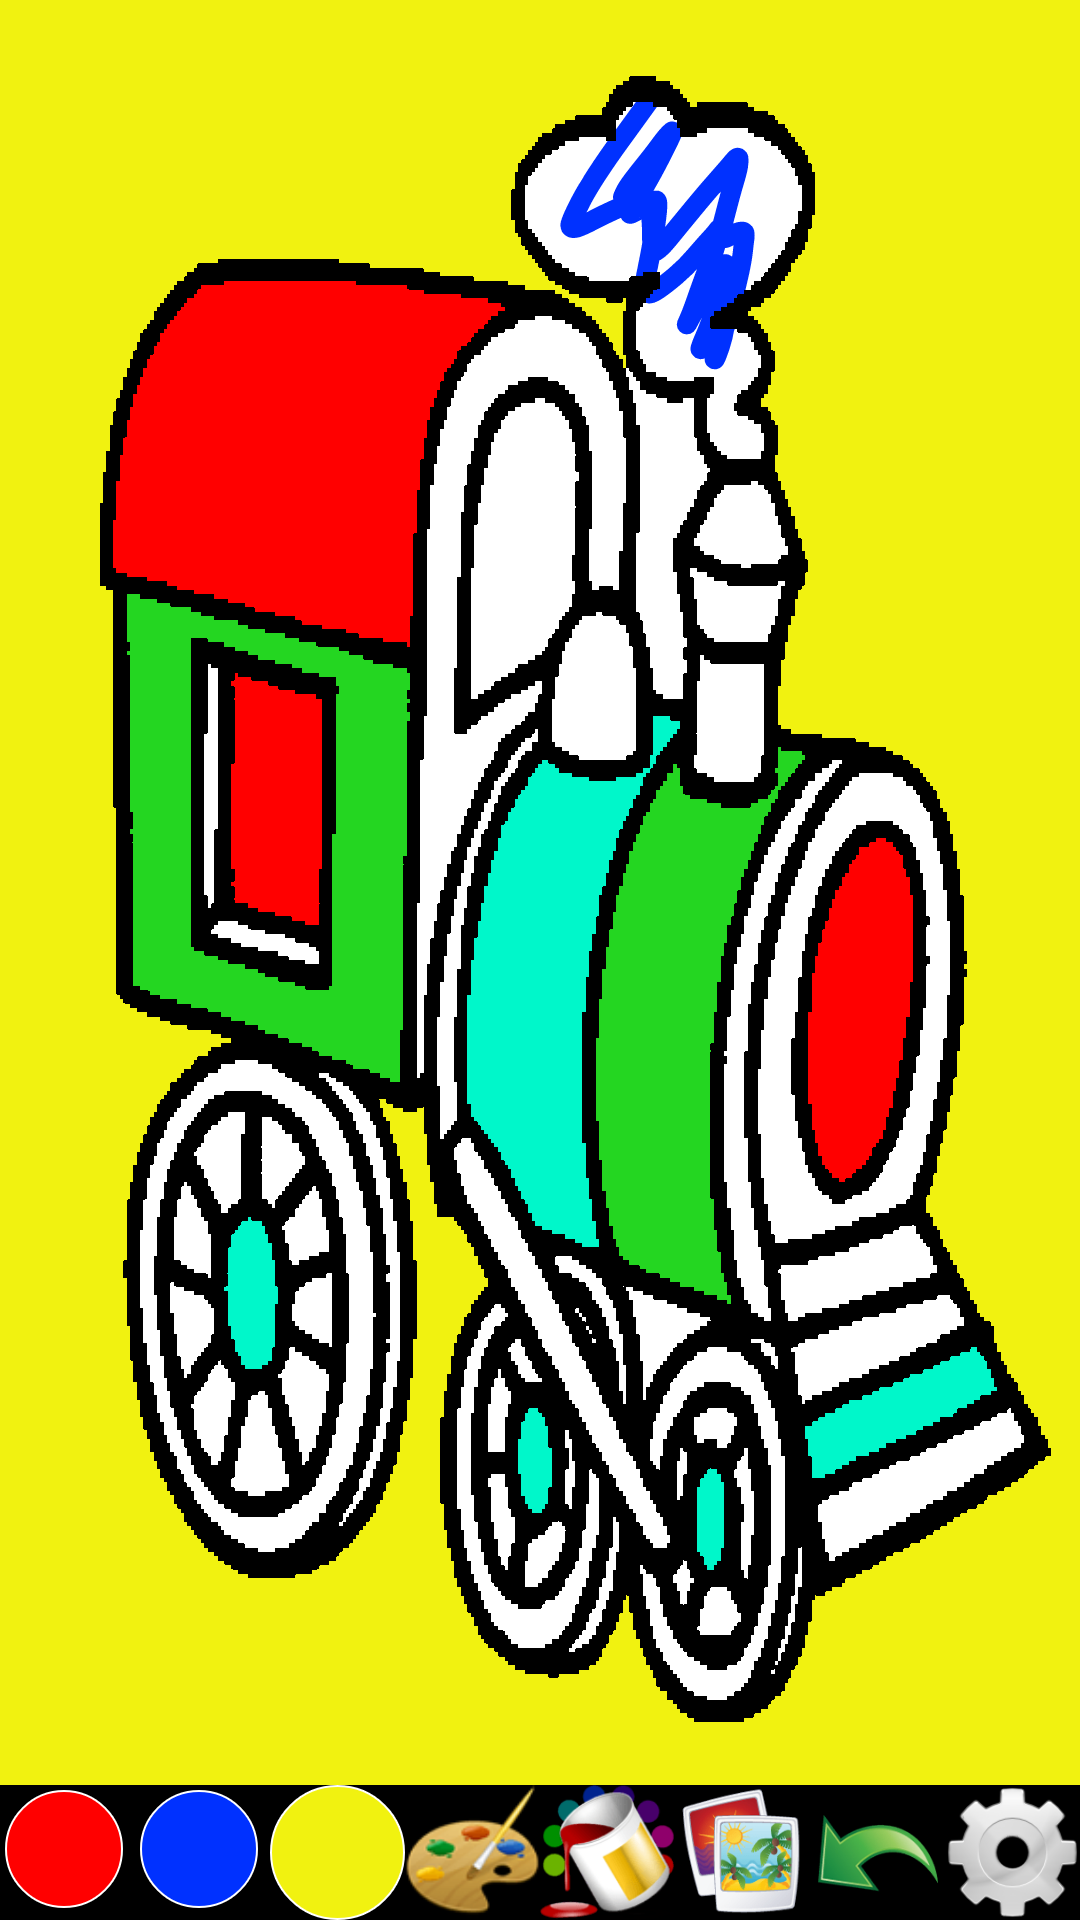 Amazon.com: Coloring Pages for Kids Pro: Appstore for Android